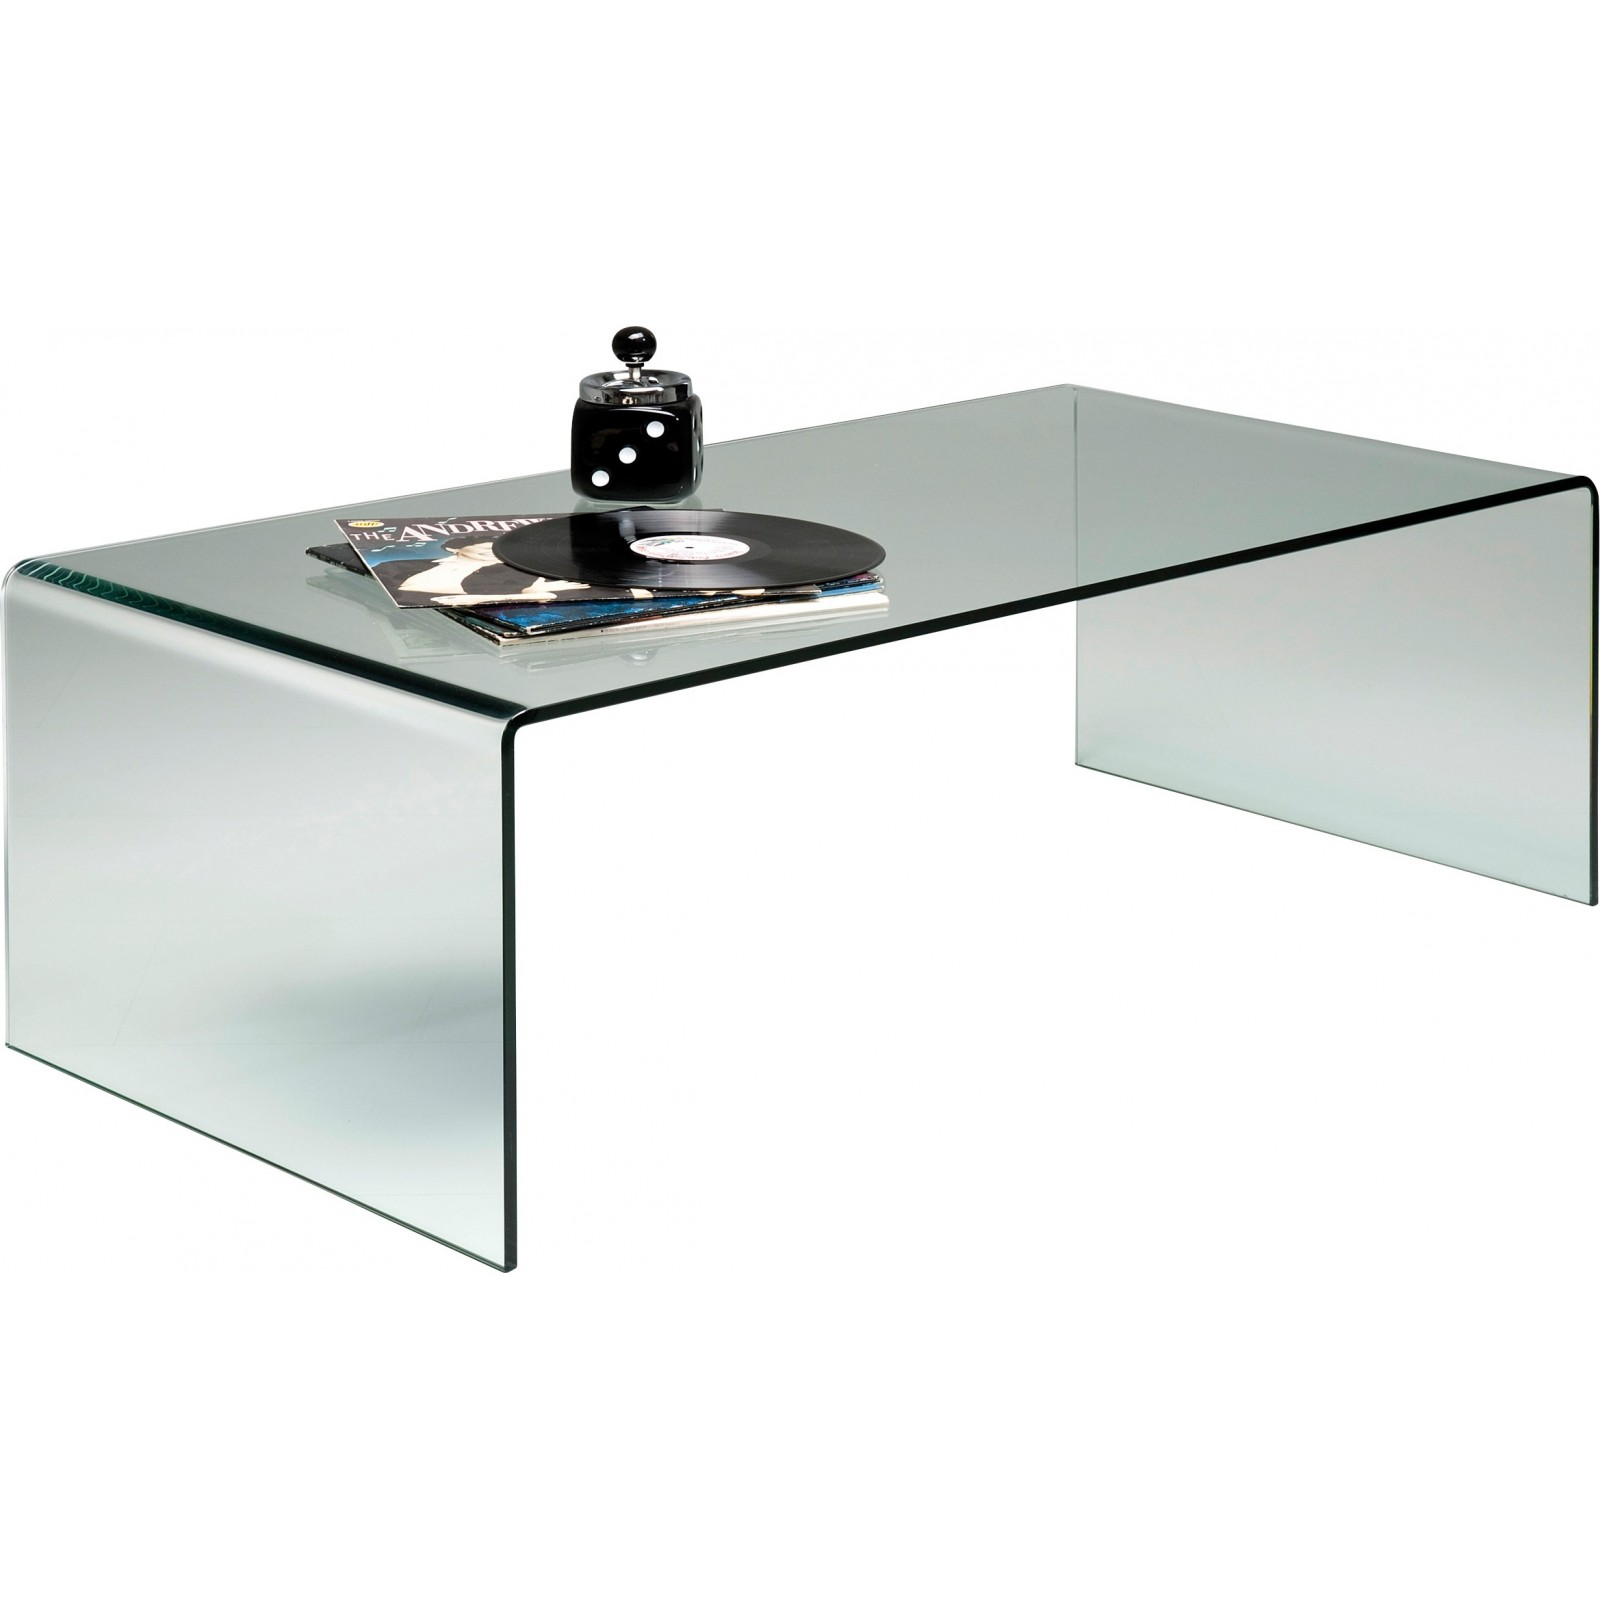 table basse contemporaine en verre clear club kare design. Black Bedroom Furniture Sets. Home Design Ideas